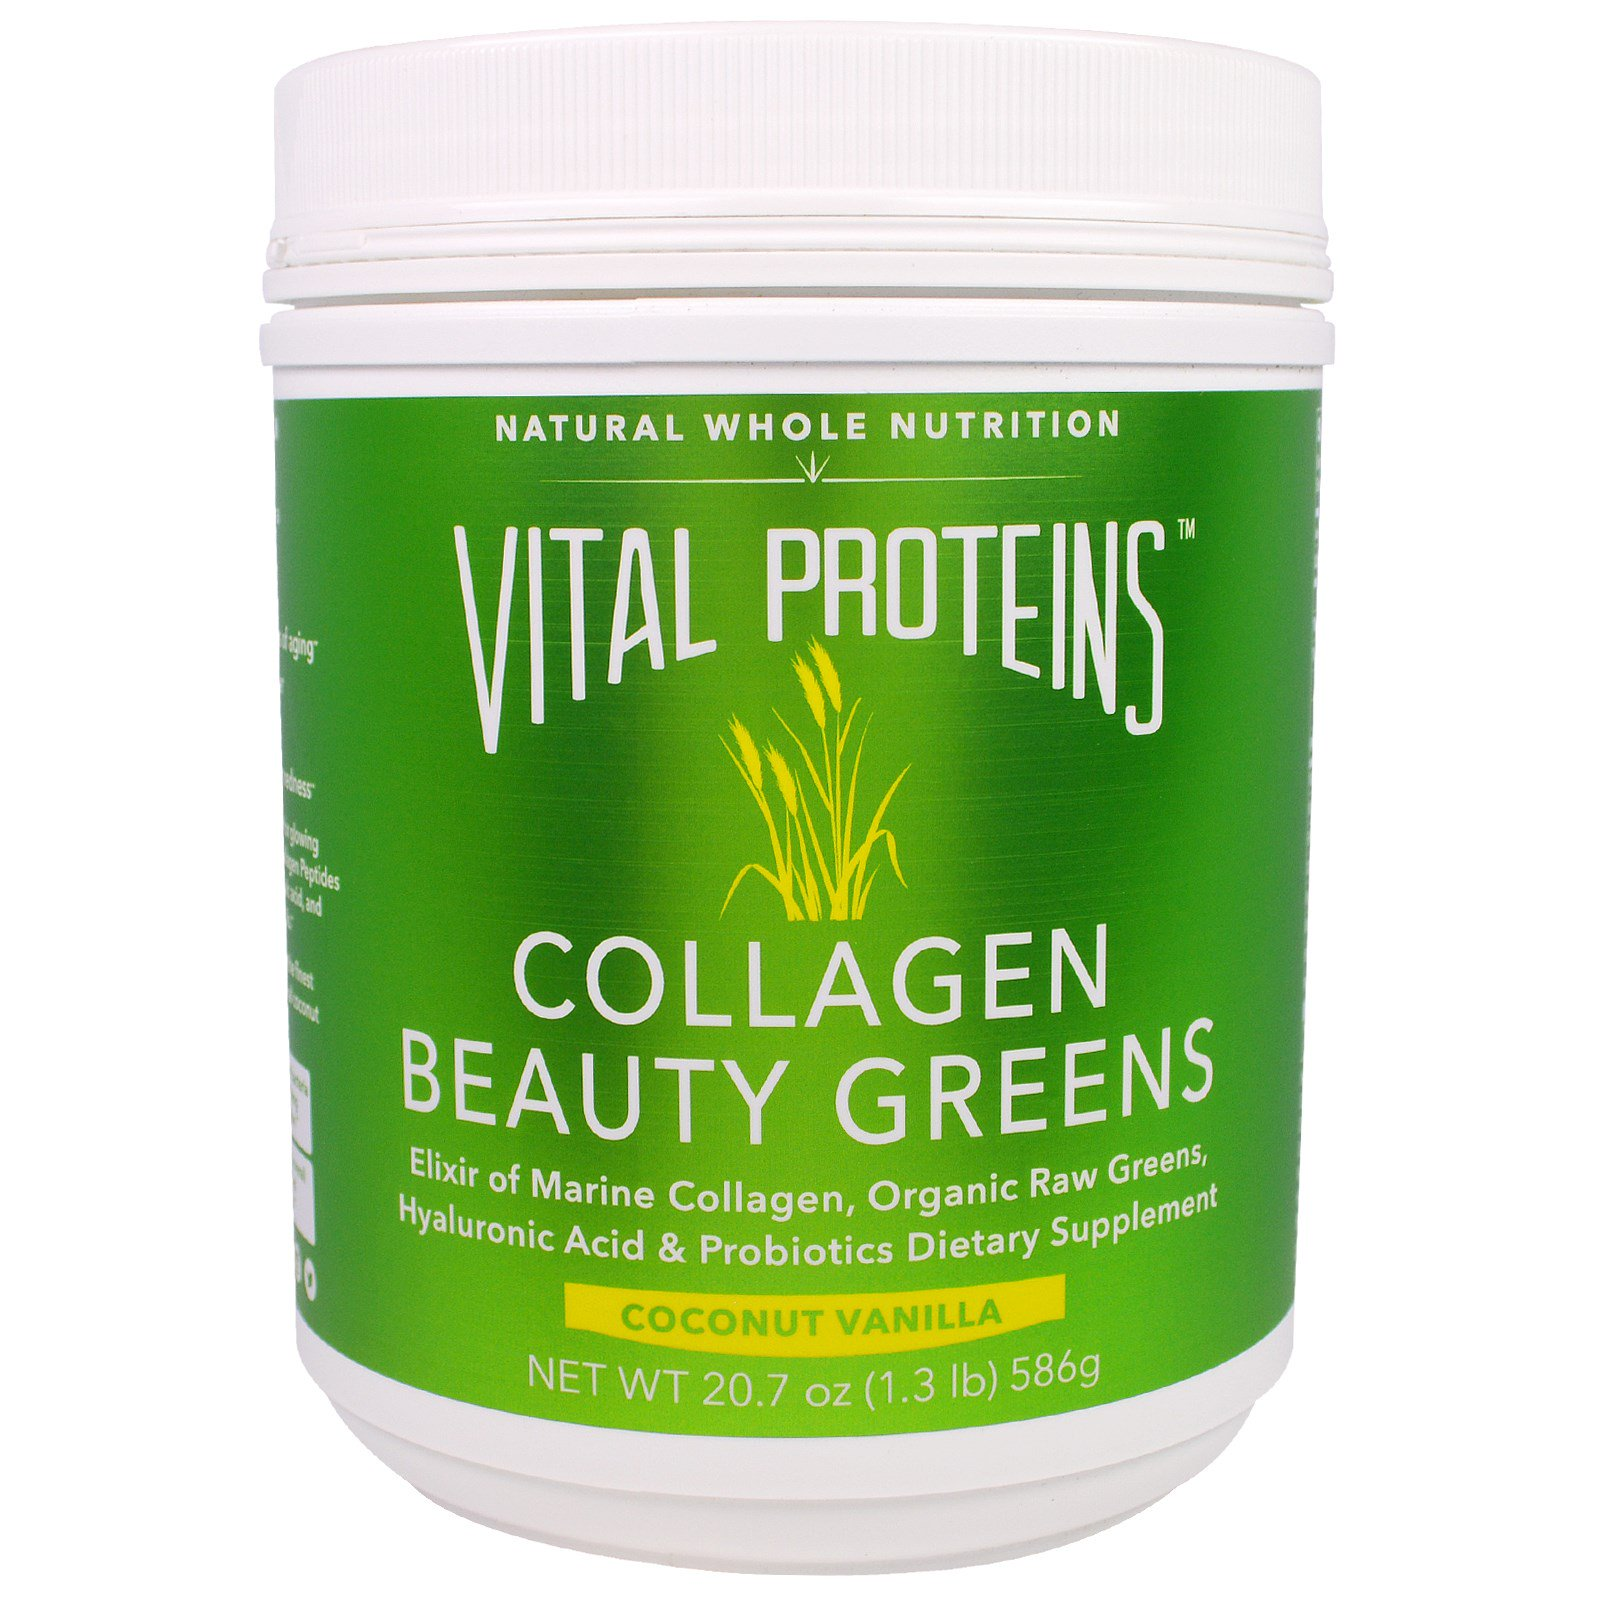 Image result for vital proteins beauty greens